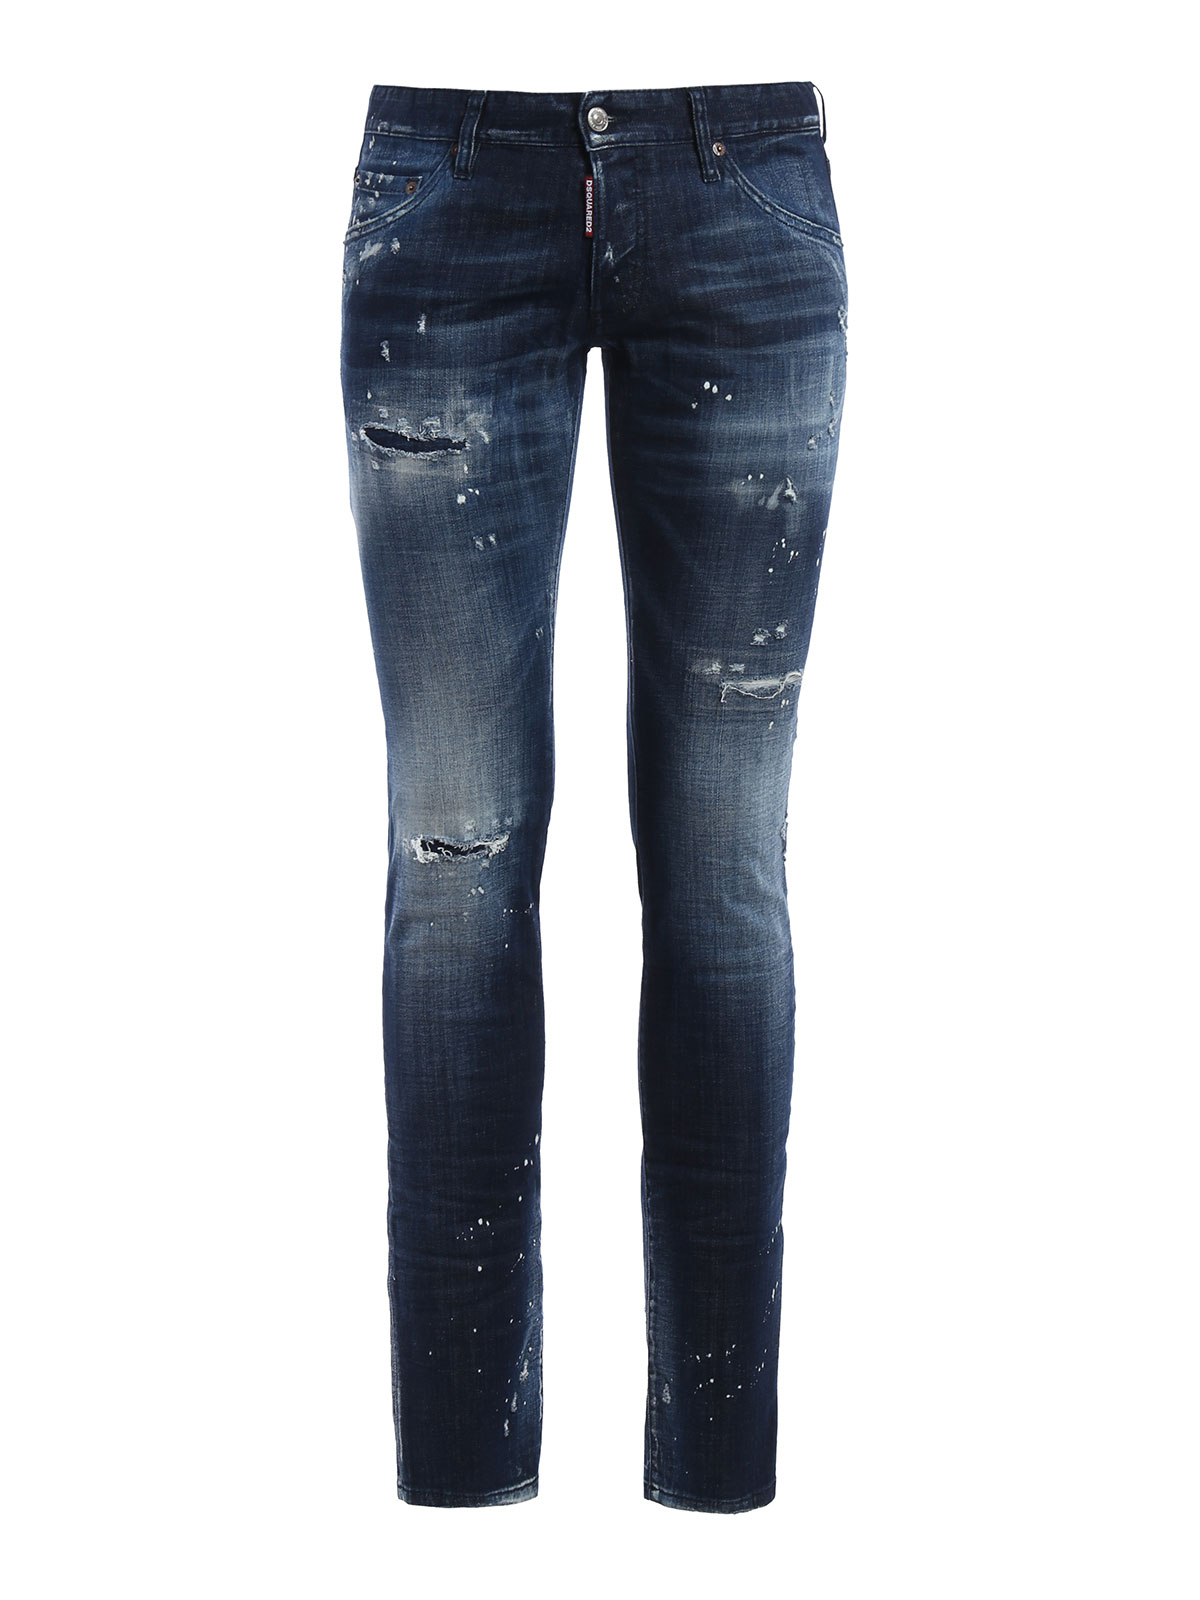 The fit of the leg isn't the only place that long jeans for women vary. Employ pants that come to a natural waistline, sit just below it, or go into a low rise. Continue to focus in on fit by turning to petite or plus size jeans.